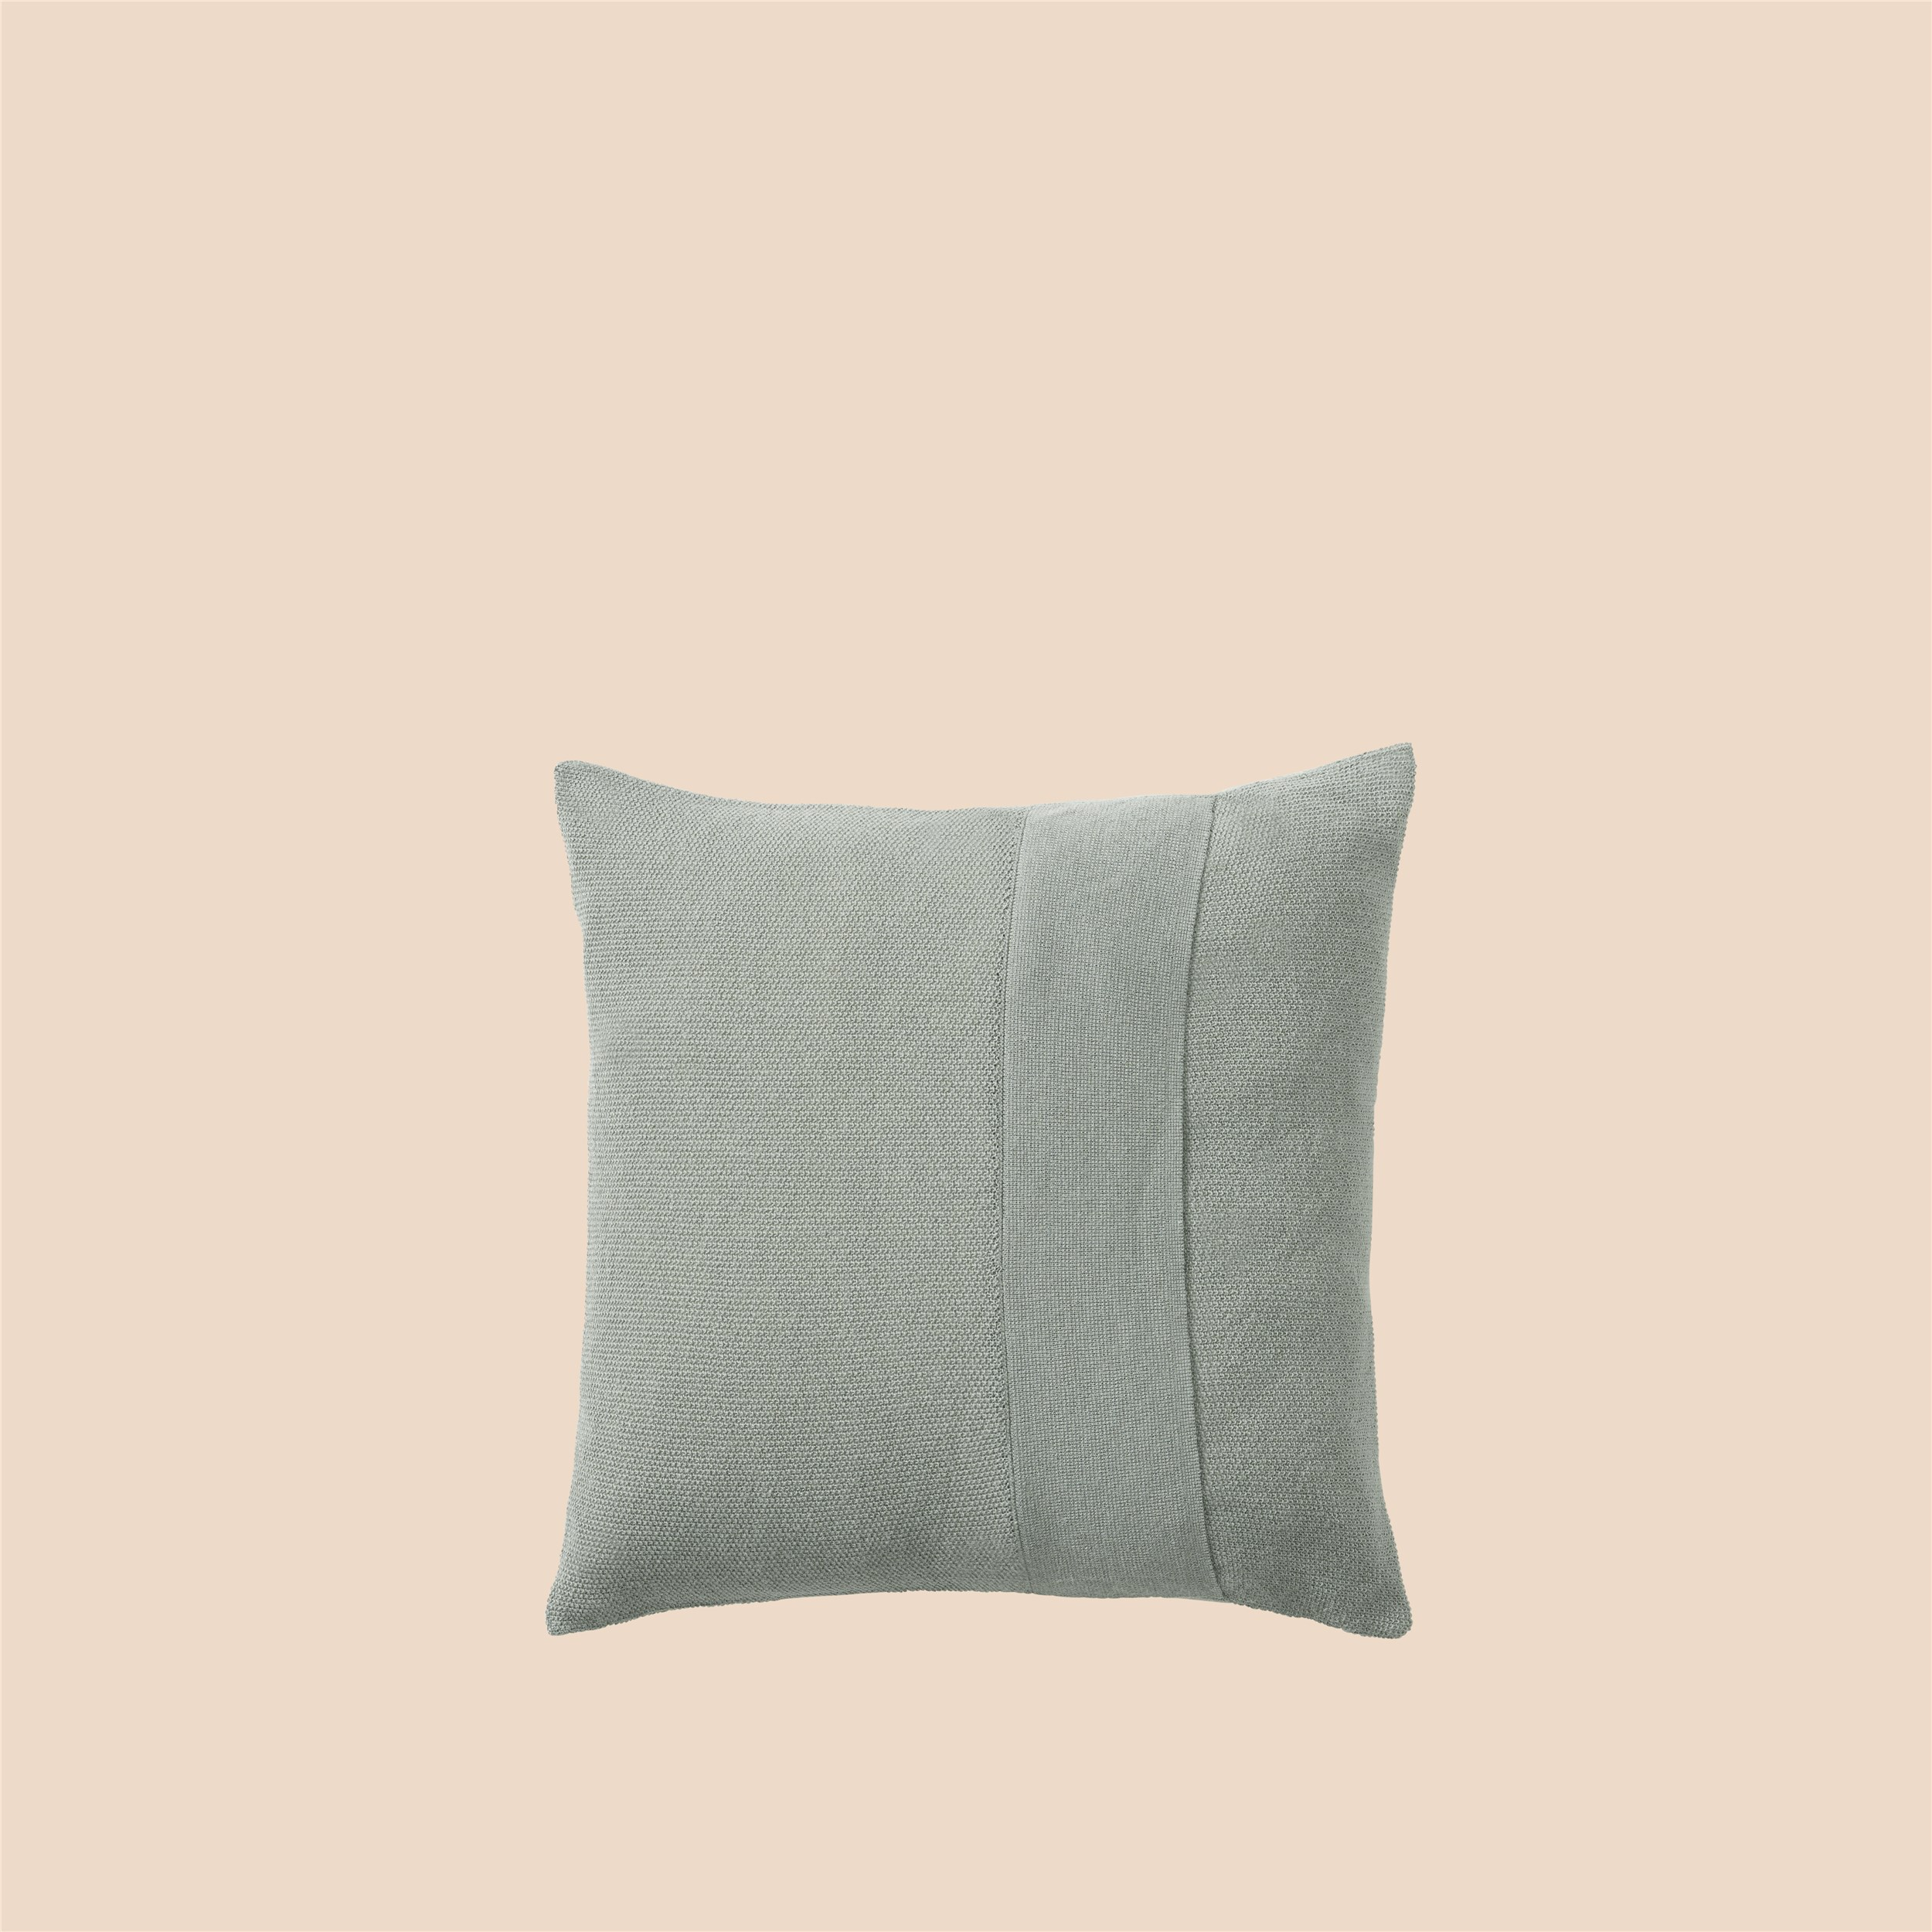 Layer Cushion 50x50 sage green